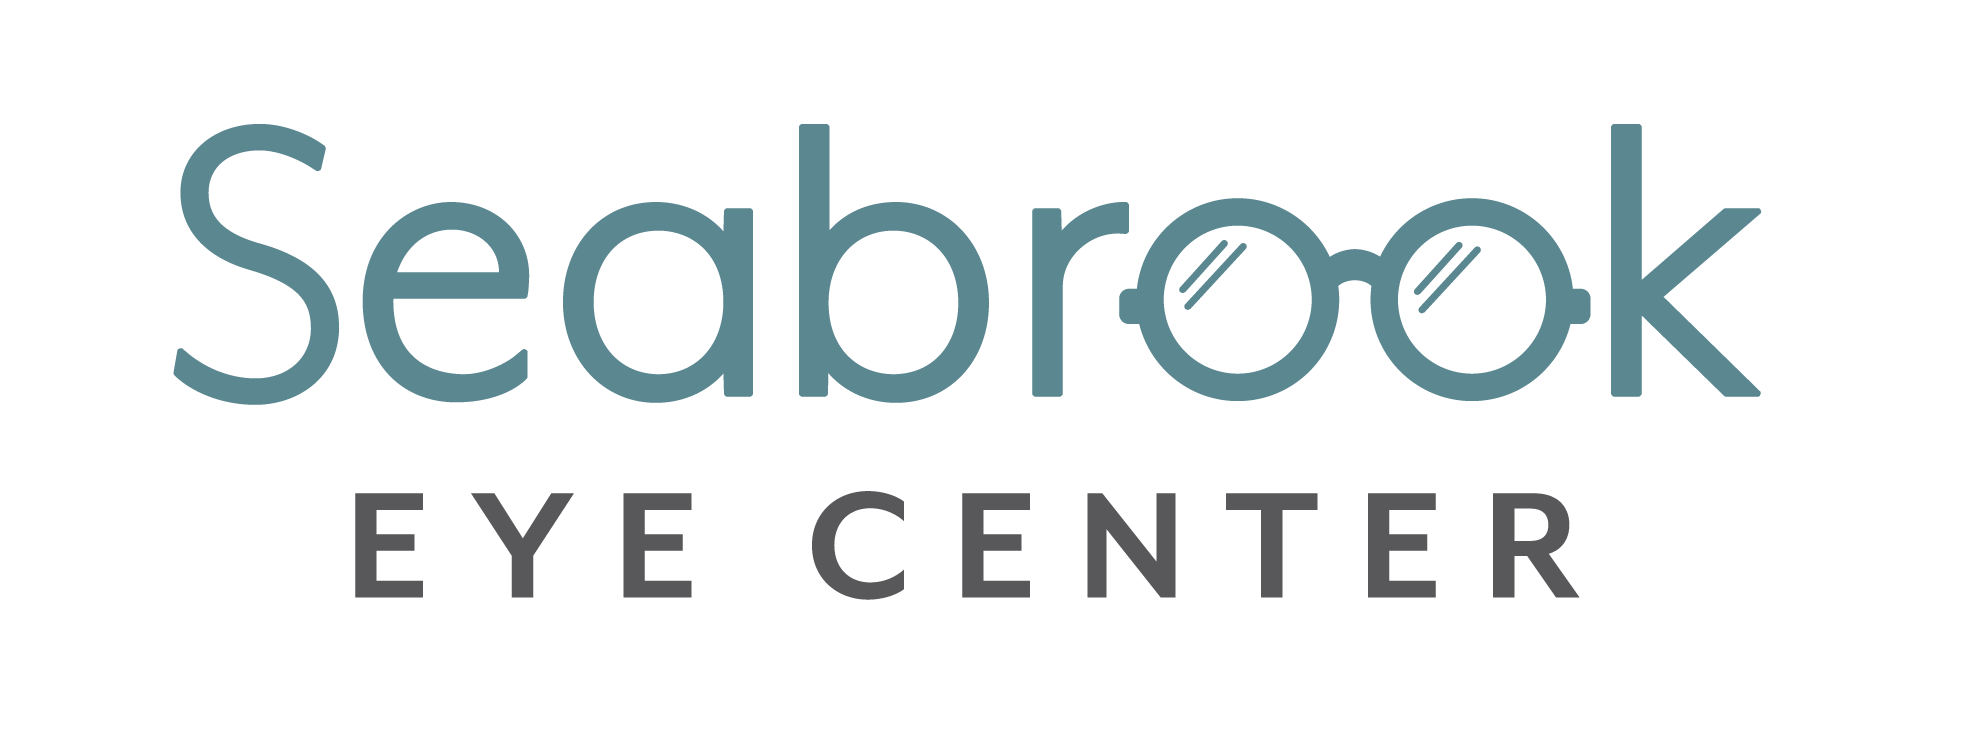 Seabrook Eye Center